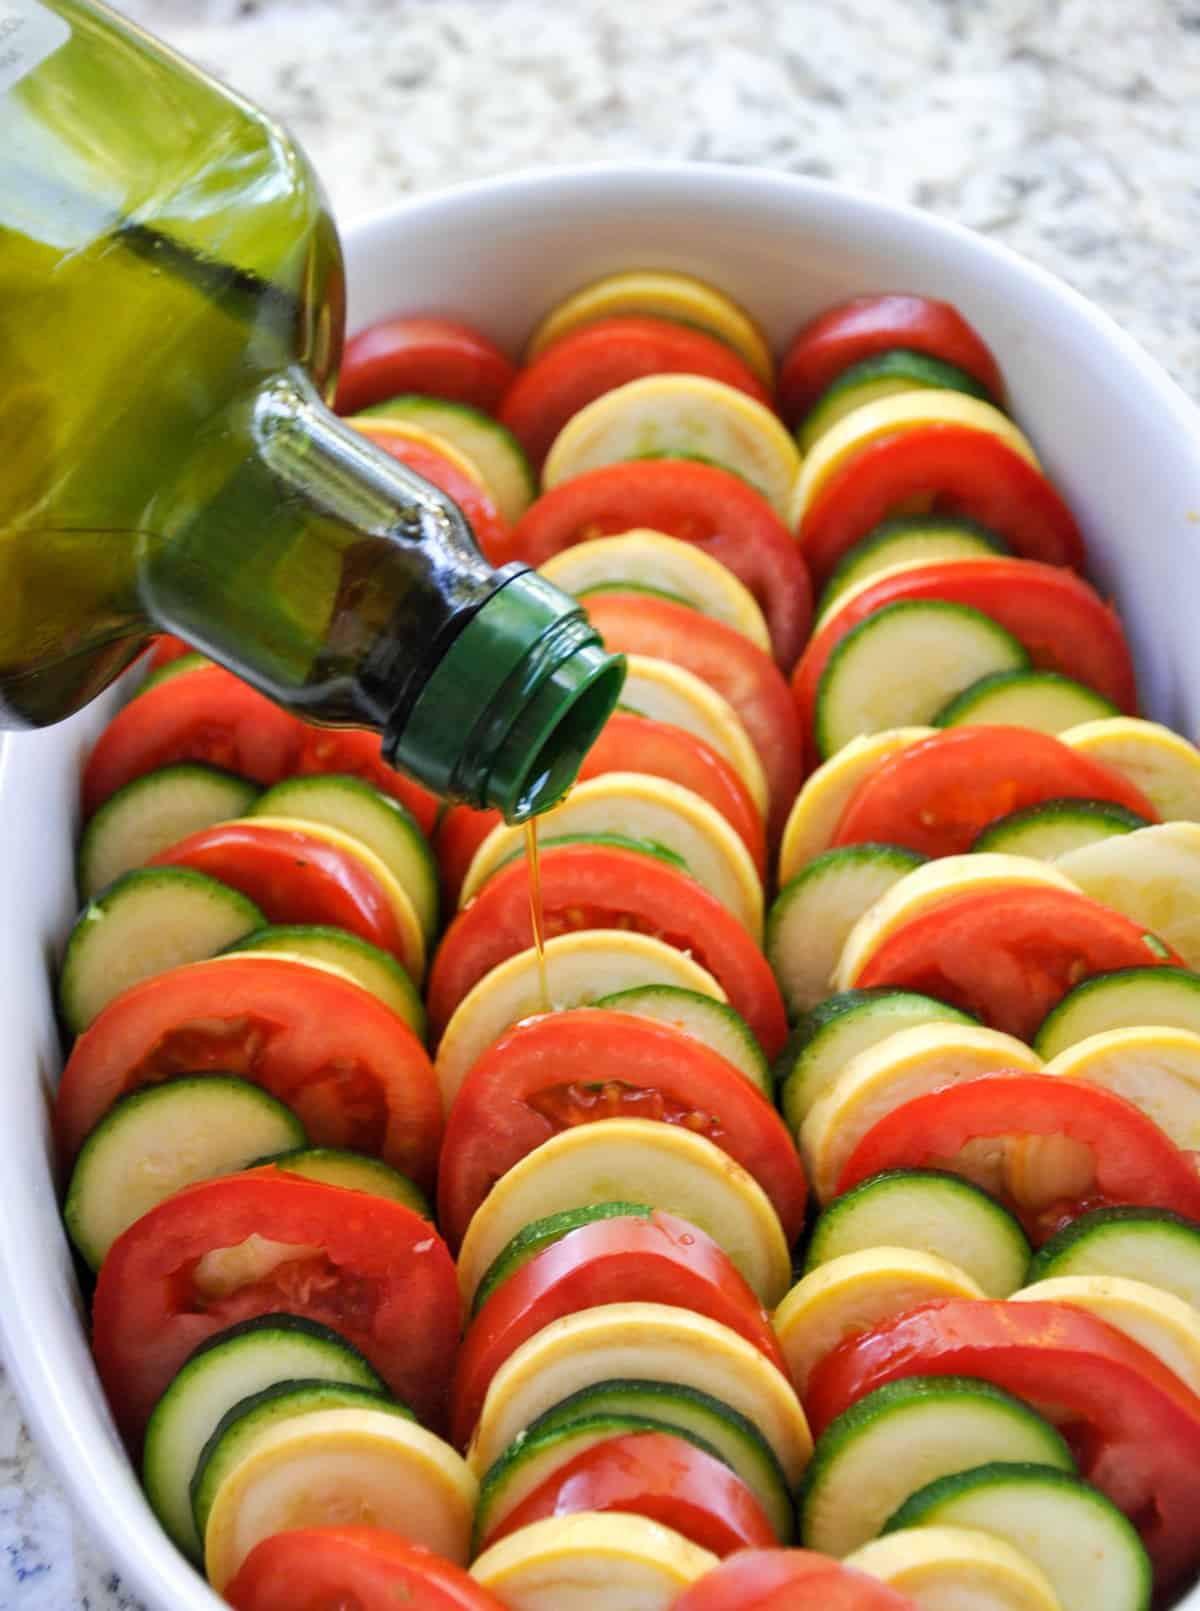 Drizzle olive oil over layered zucchini and tomatoes